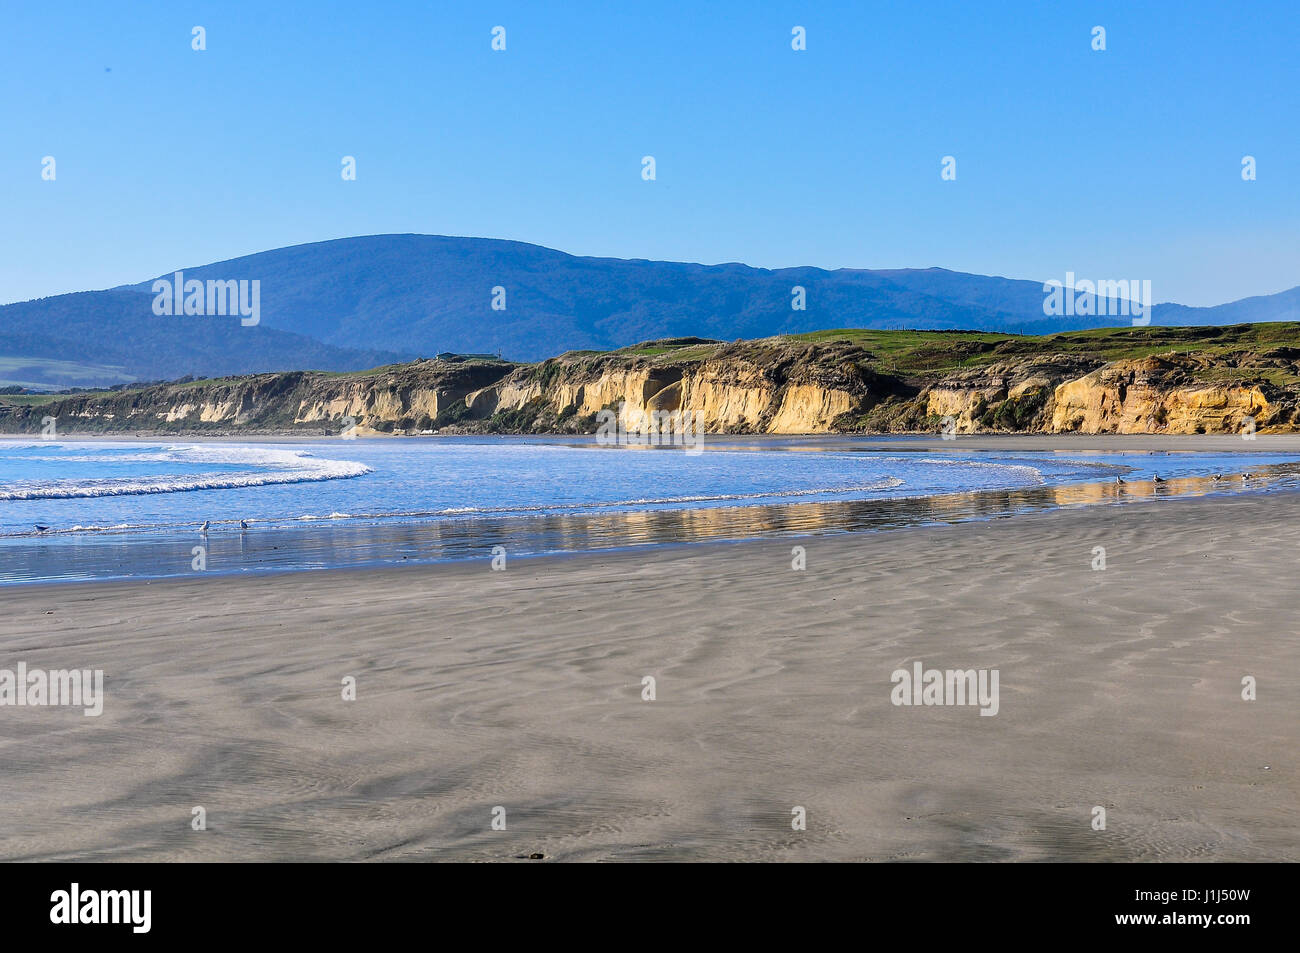 View of the beach near Monkey Island in the Southern Scenic Route, New Zealand - Stock Image